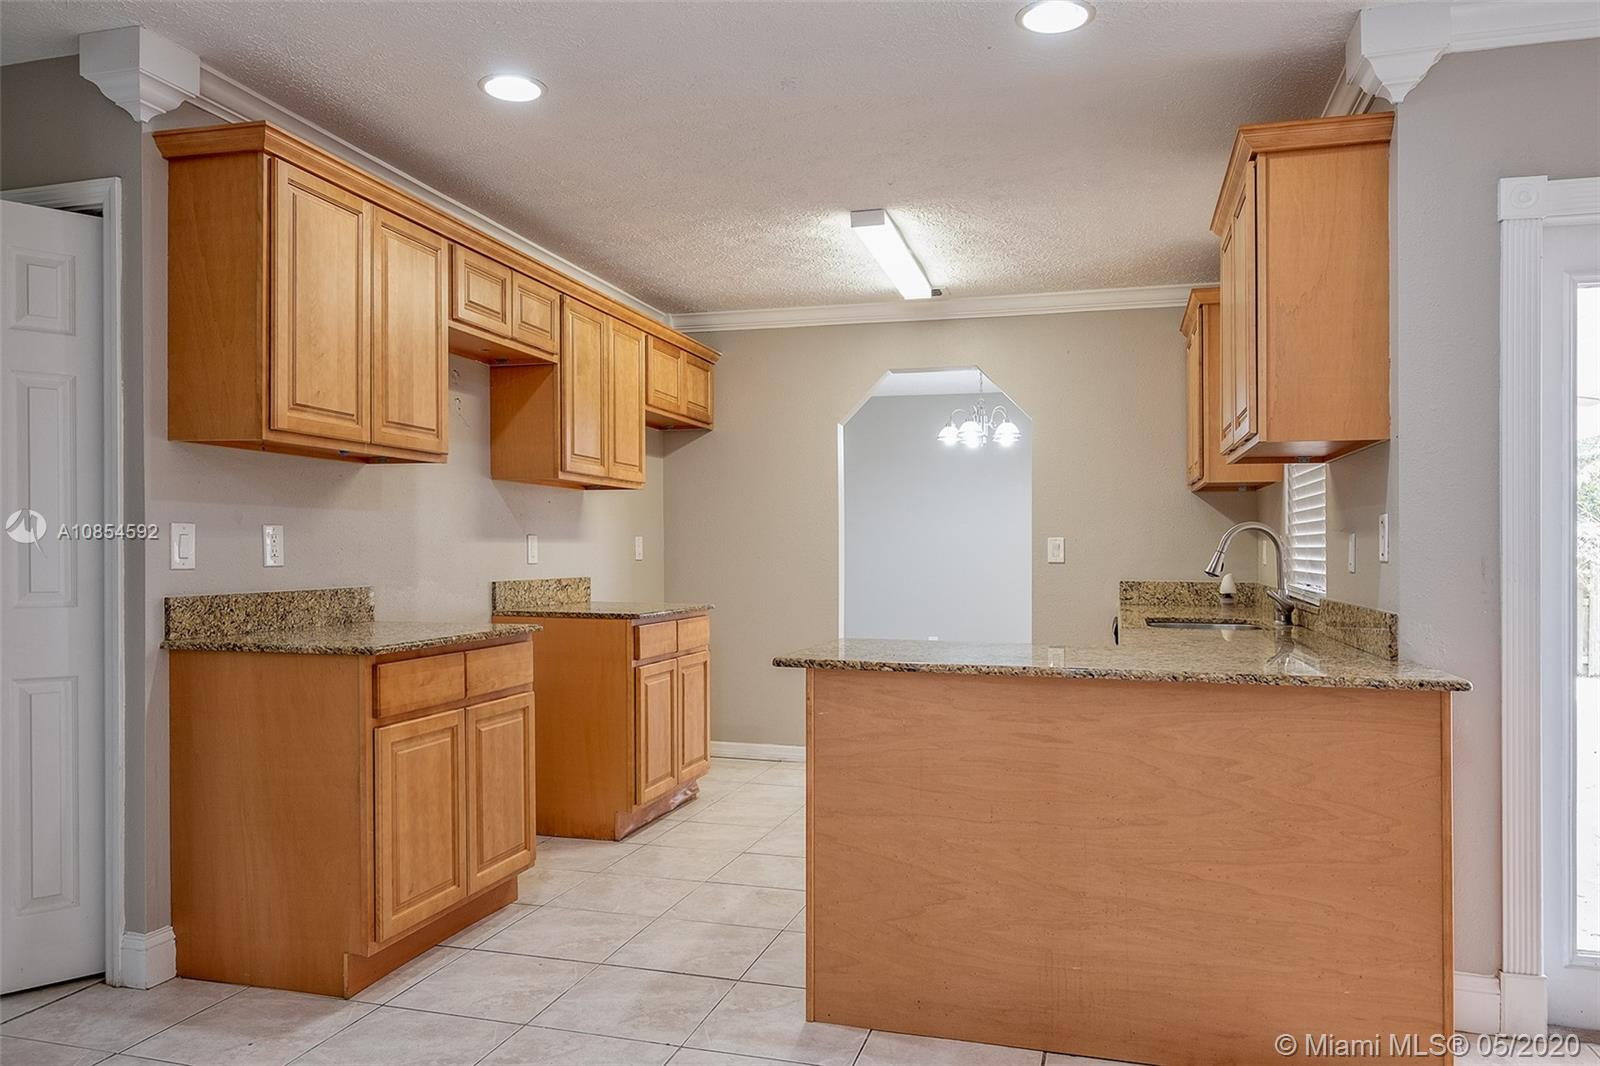 2514 SW Cameo Blvd, Port St. Lucie, Florida 34953, 3 Bedrooms Bedrooms, ,2 BathroomsBathrooms,Residential,For Sale,2514 SW Cameo Blvd,A10854592